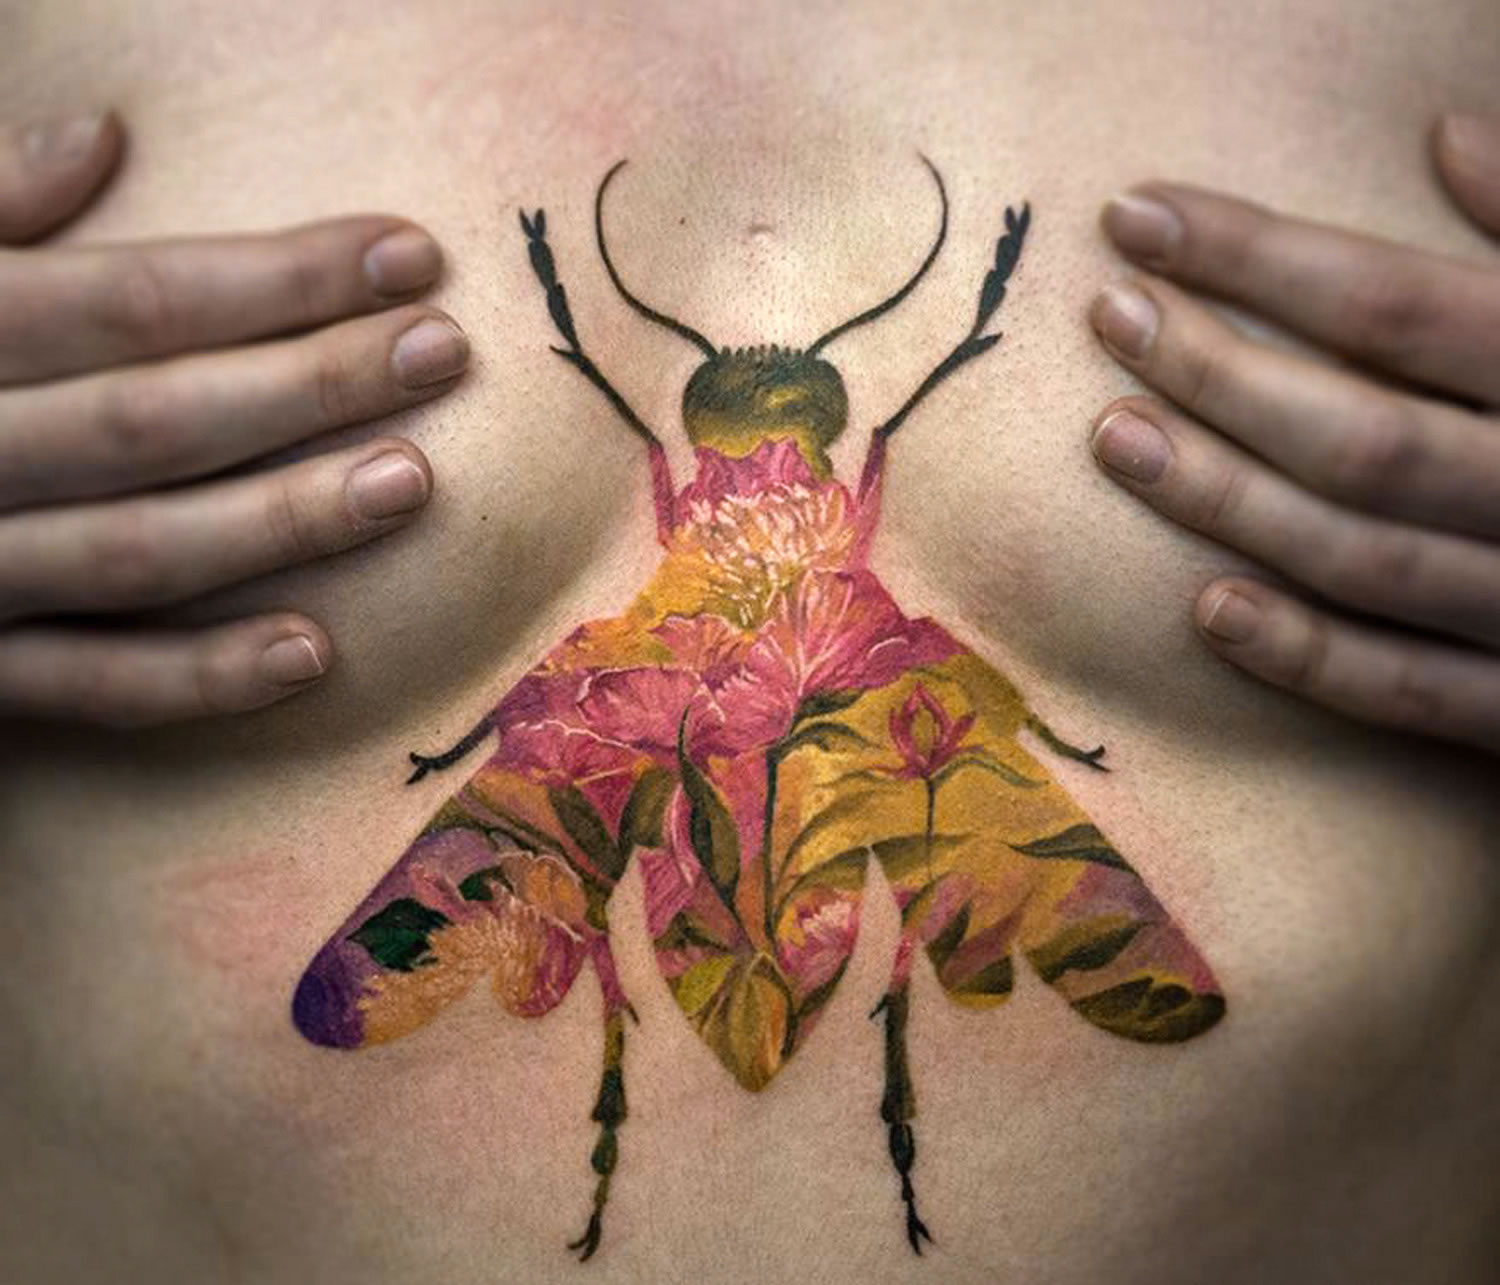 double exposure bug tattoo by andrey lukovnikov